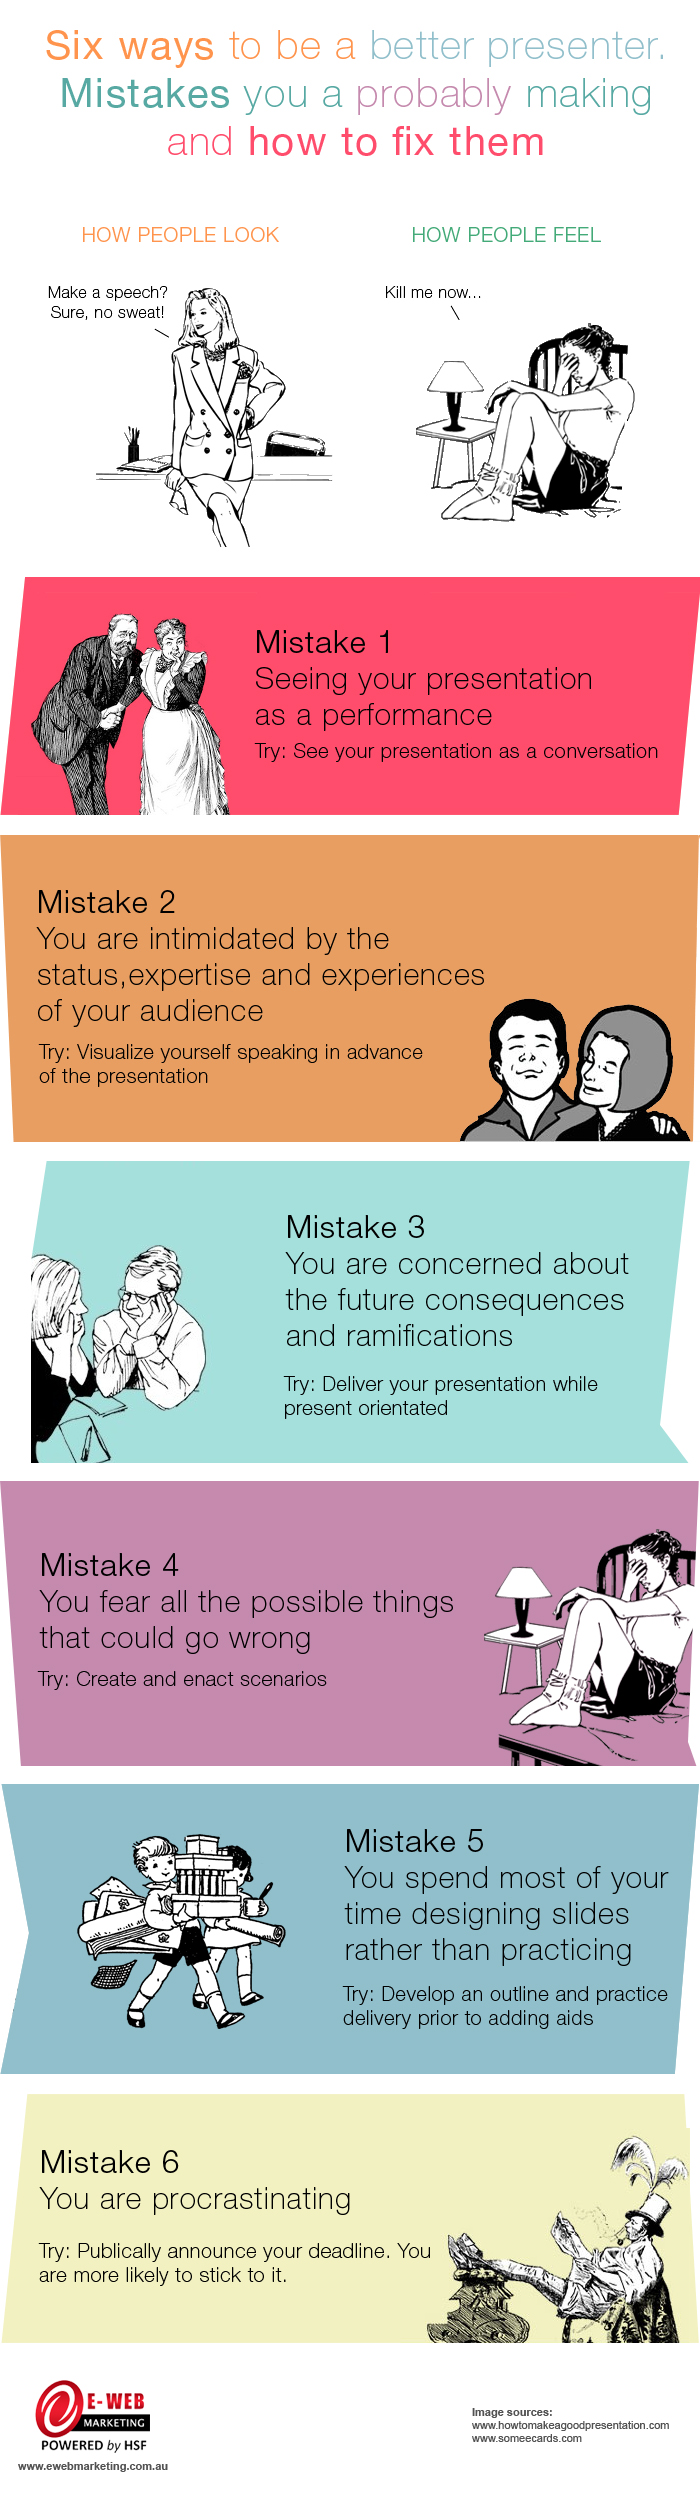 6 Ways to Rid Stage Fright During Presentations